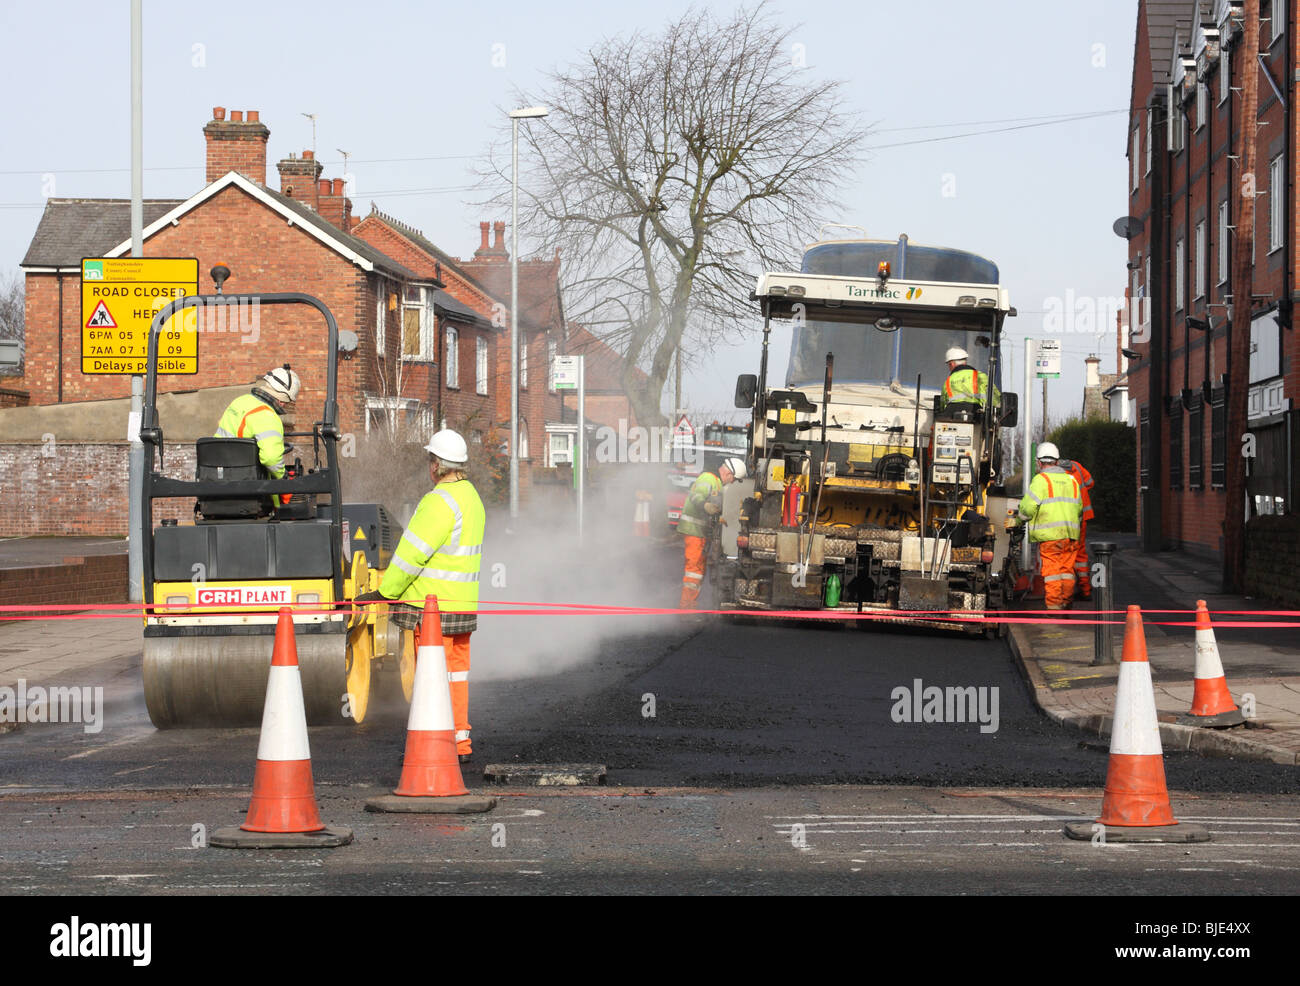 Workers relaying Tarmac on a road in the U.K. - Stock Image